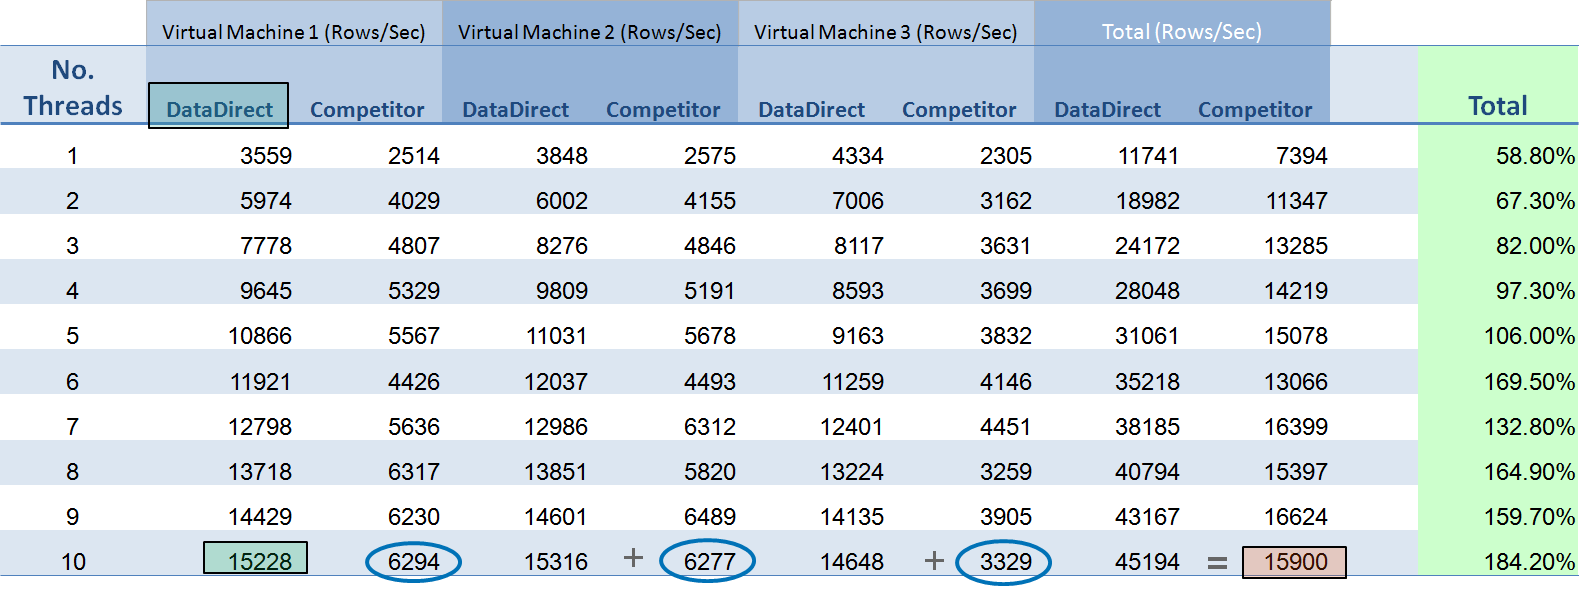 Performance Comparison- Virtual Machines